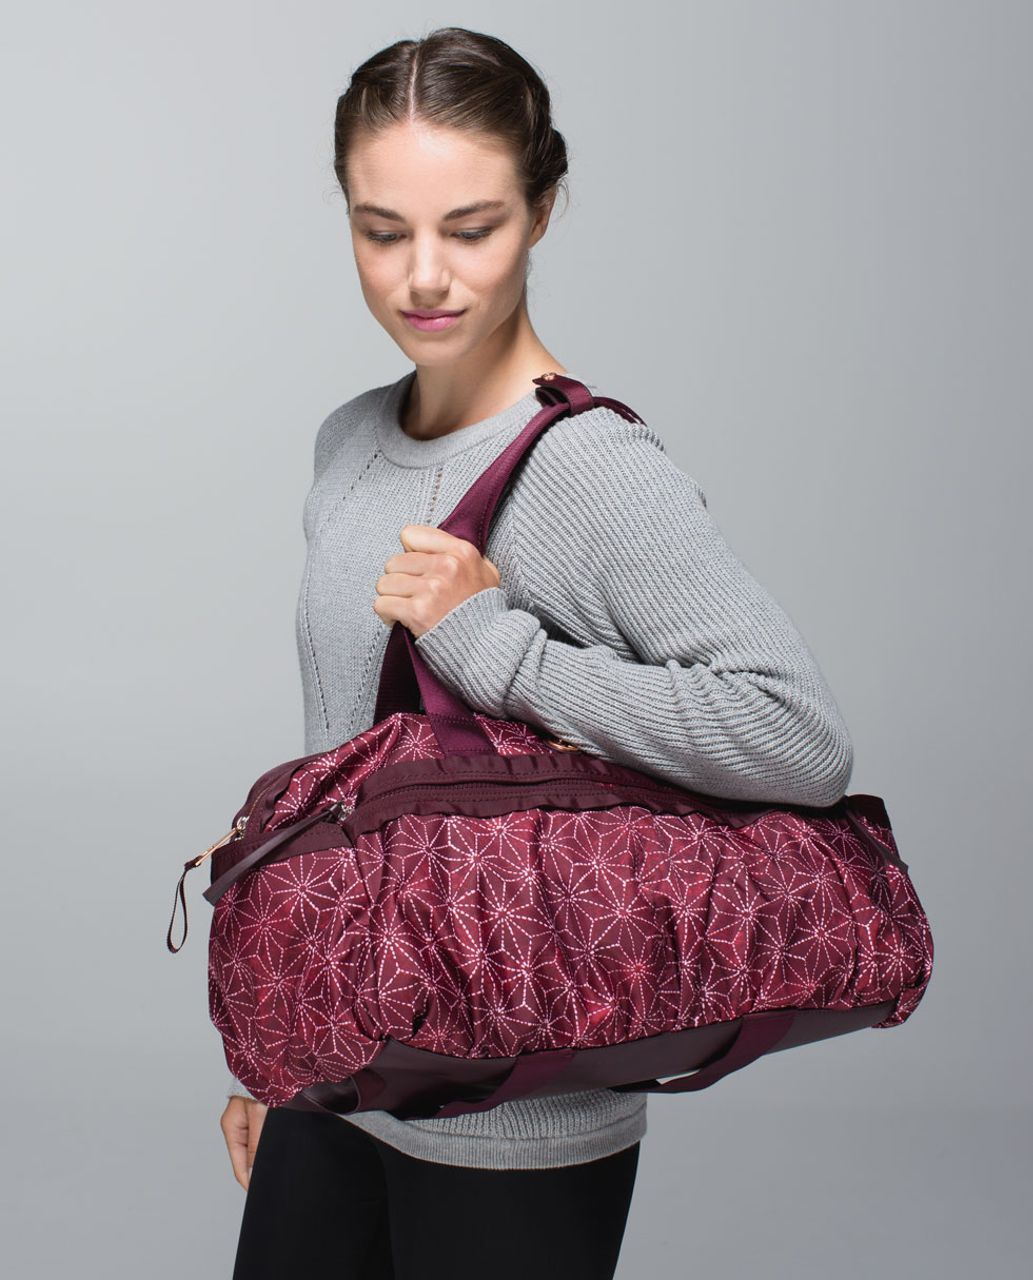 411b2fdbadf Lululemon Gym To Win Duffel *Polyester - Exploded Sachico Star Bordeaux  Drama Ghost / Bordeaux